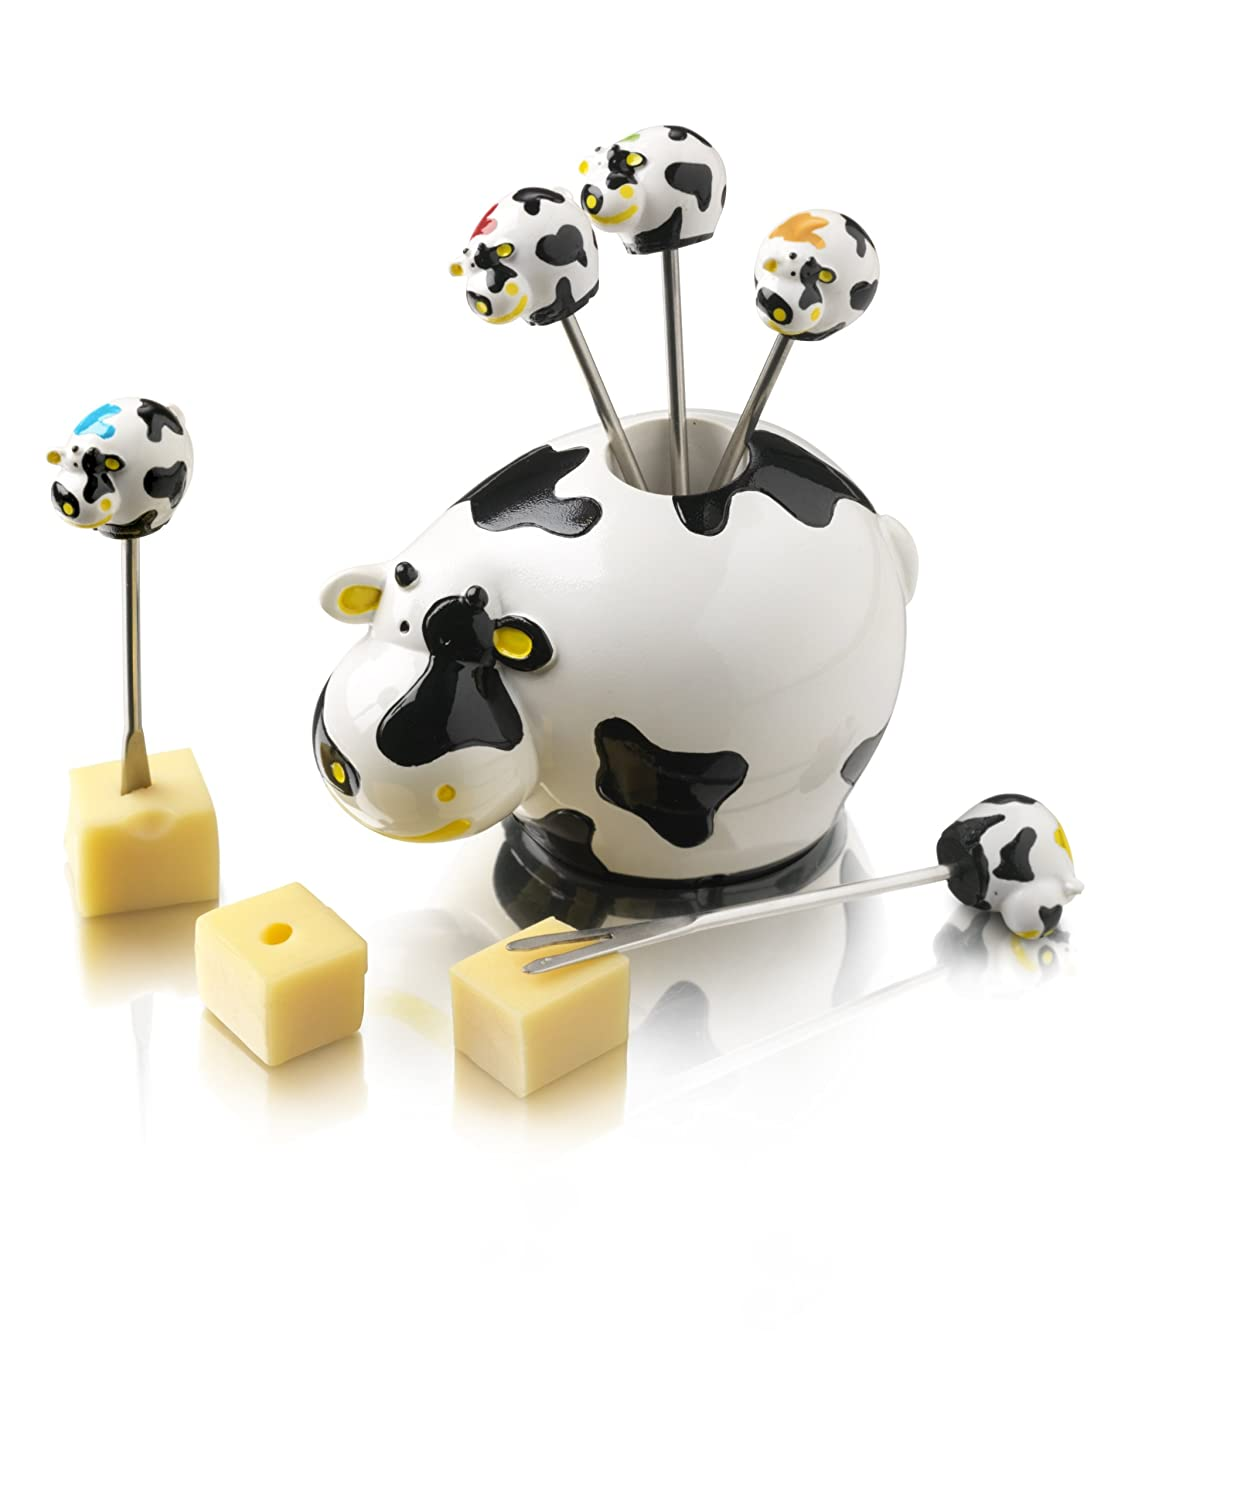 Boska 853704 Cow 7-Piece Party Pick Set Multi-Colour Stainless Steel